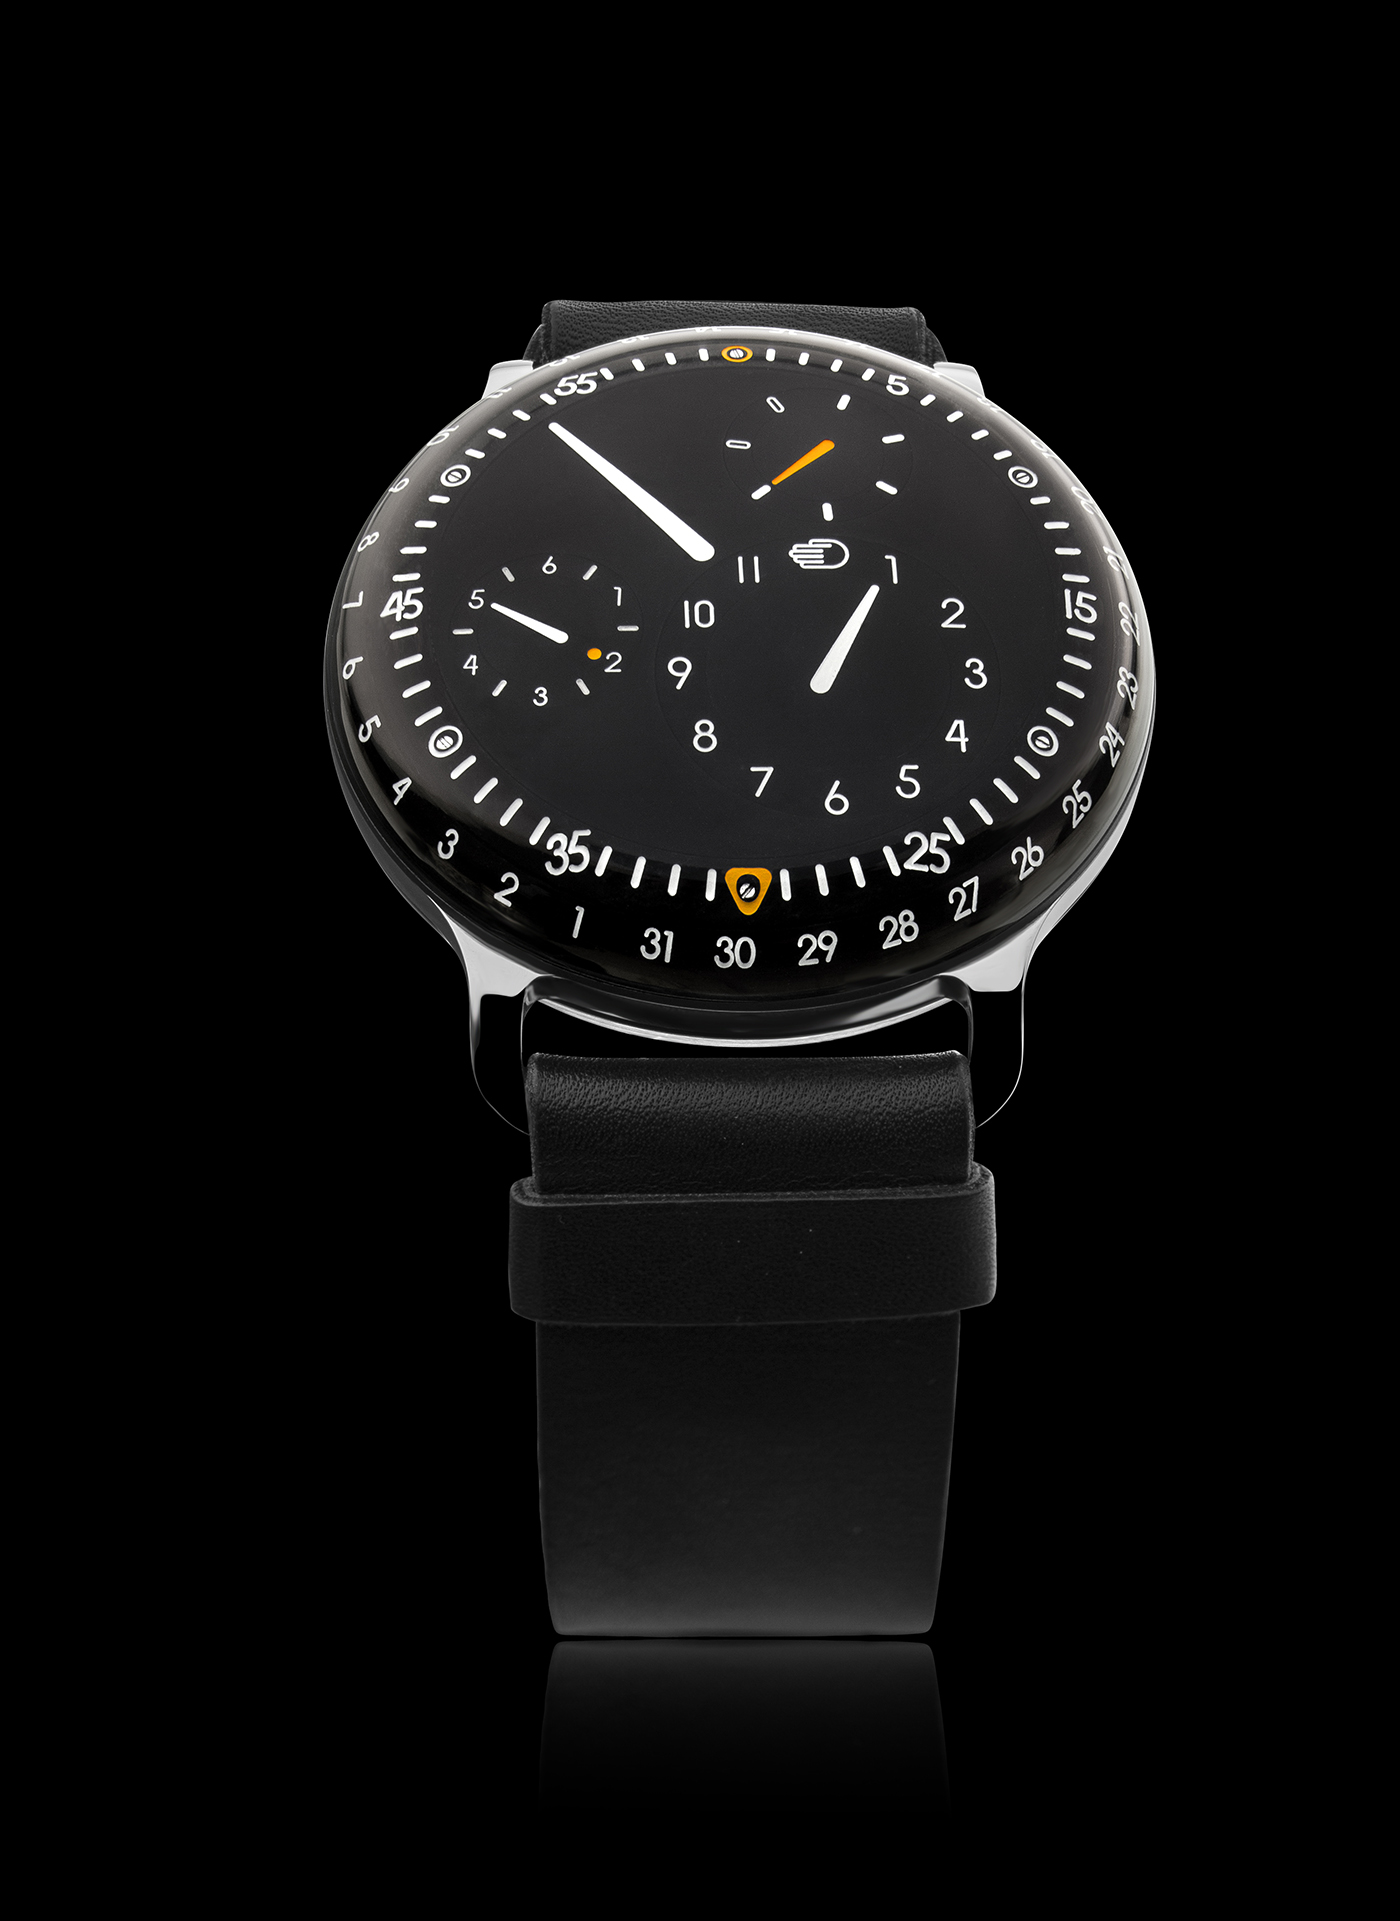 RESSENCE_TYPE3_SOLDIER_black